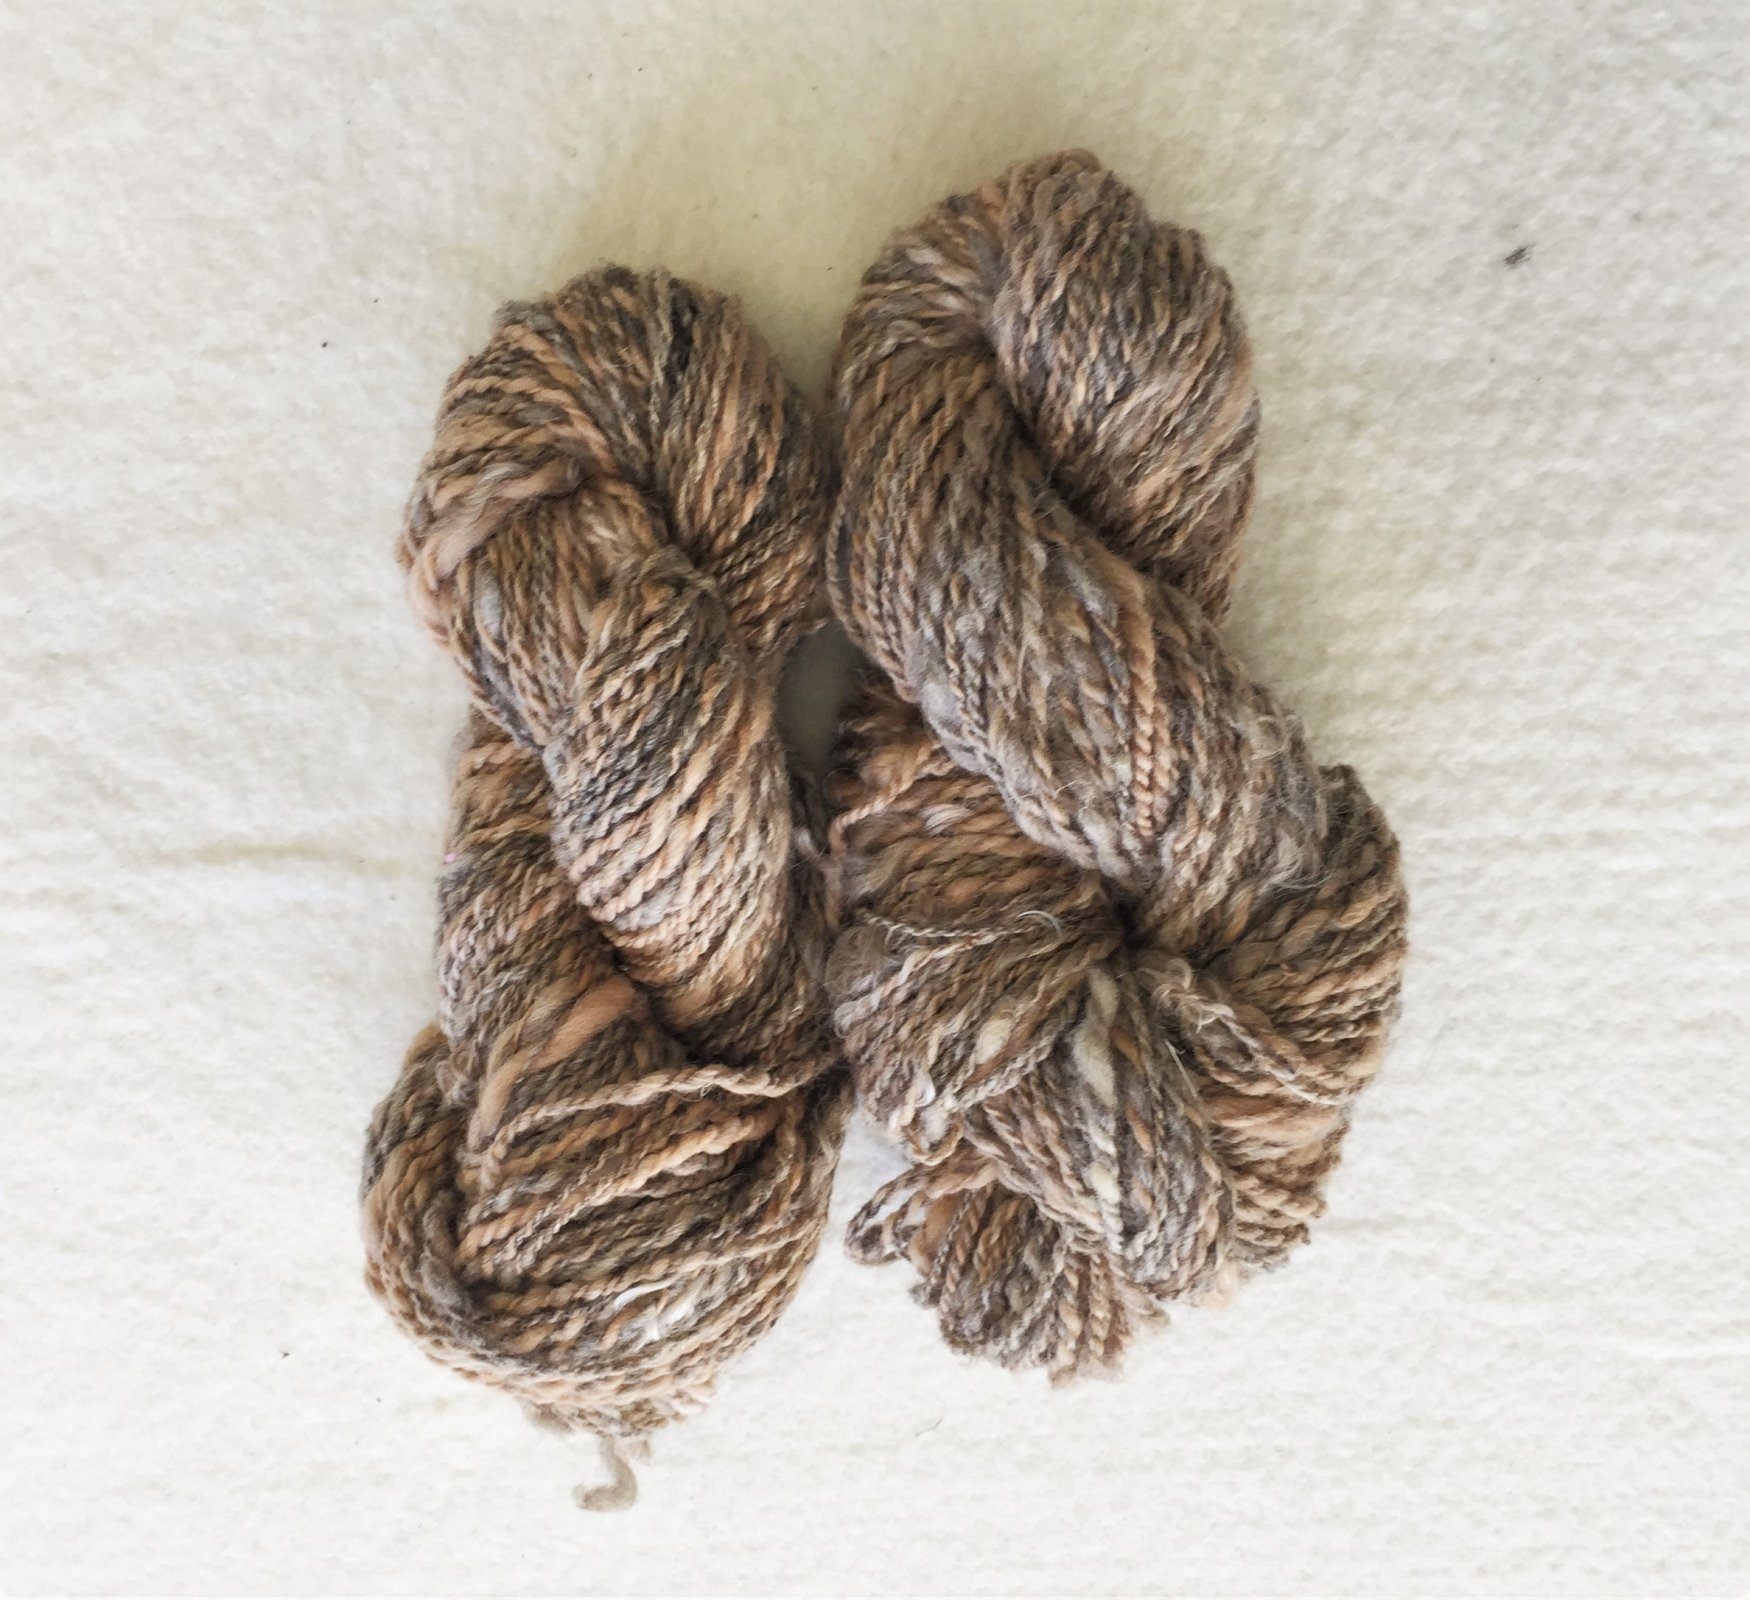 Naturespun - Handspun Yarn - Wool, Mohair, Cotton, and Flax